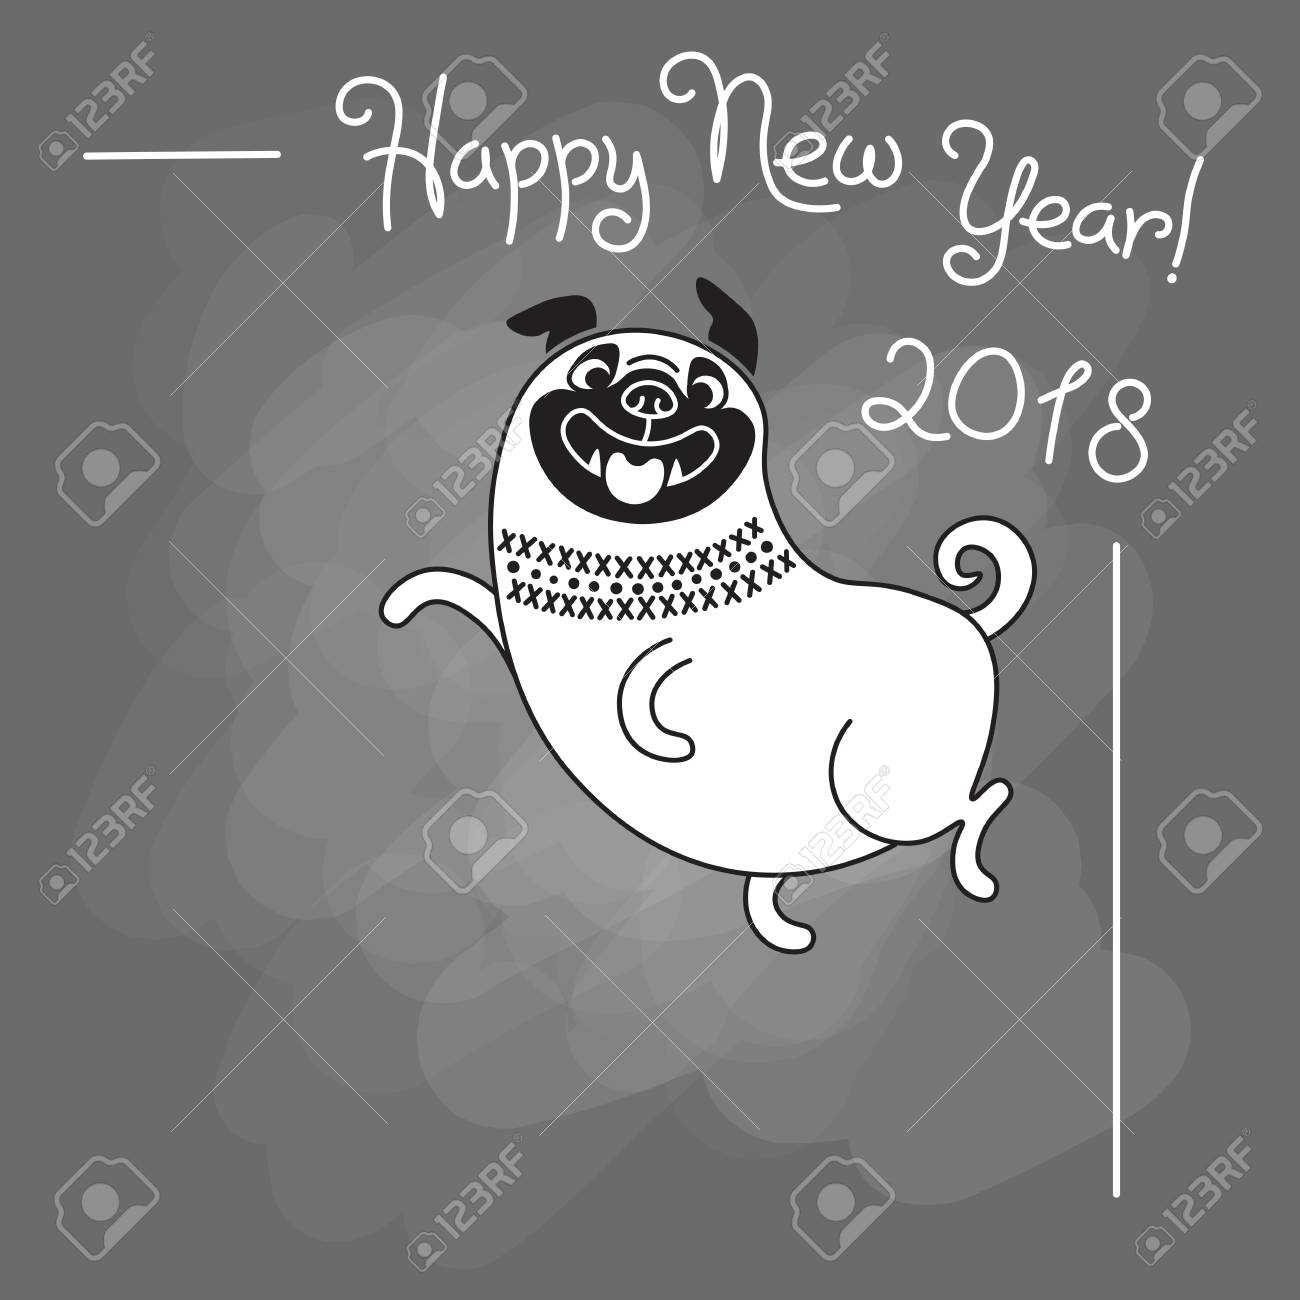 Happy 2018 New Year Card Funny Pug On Gray Background Dog Chinese